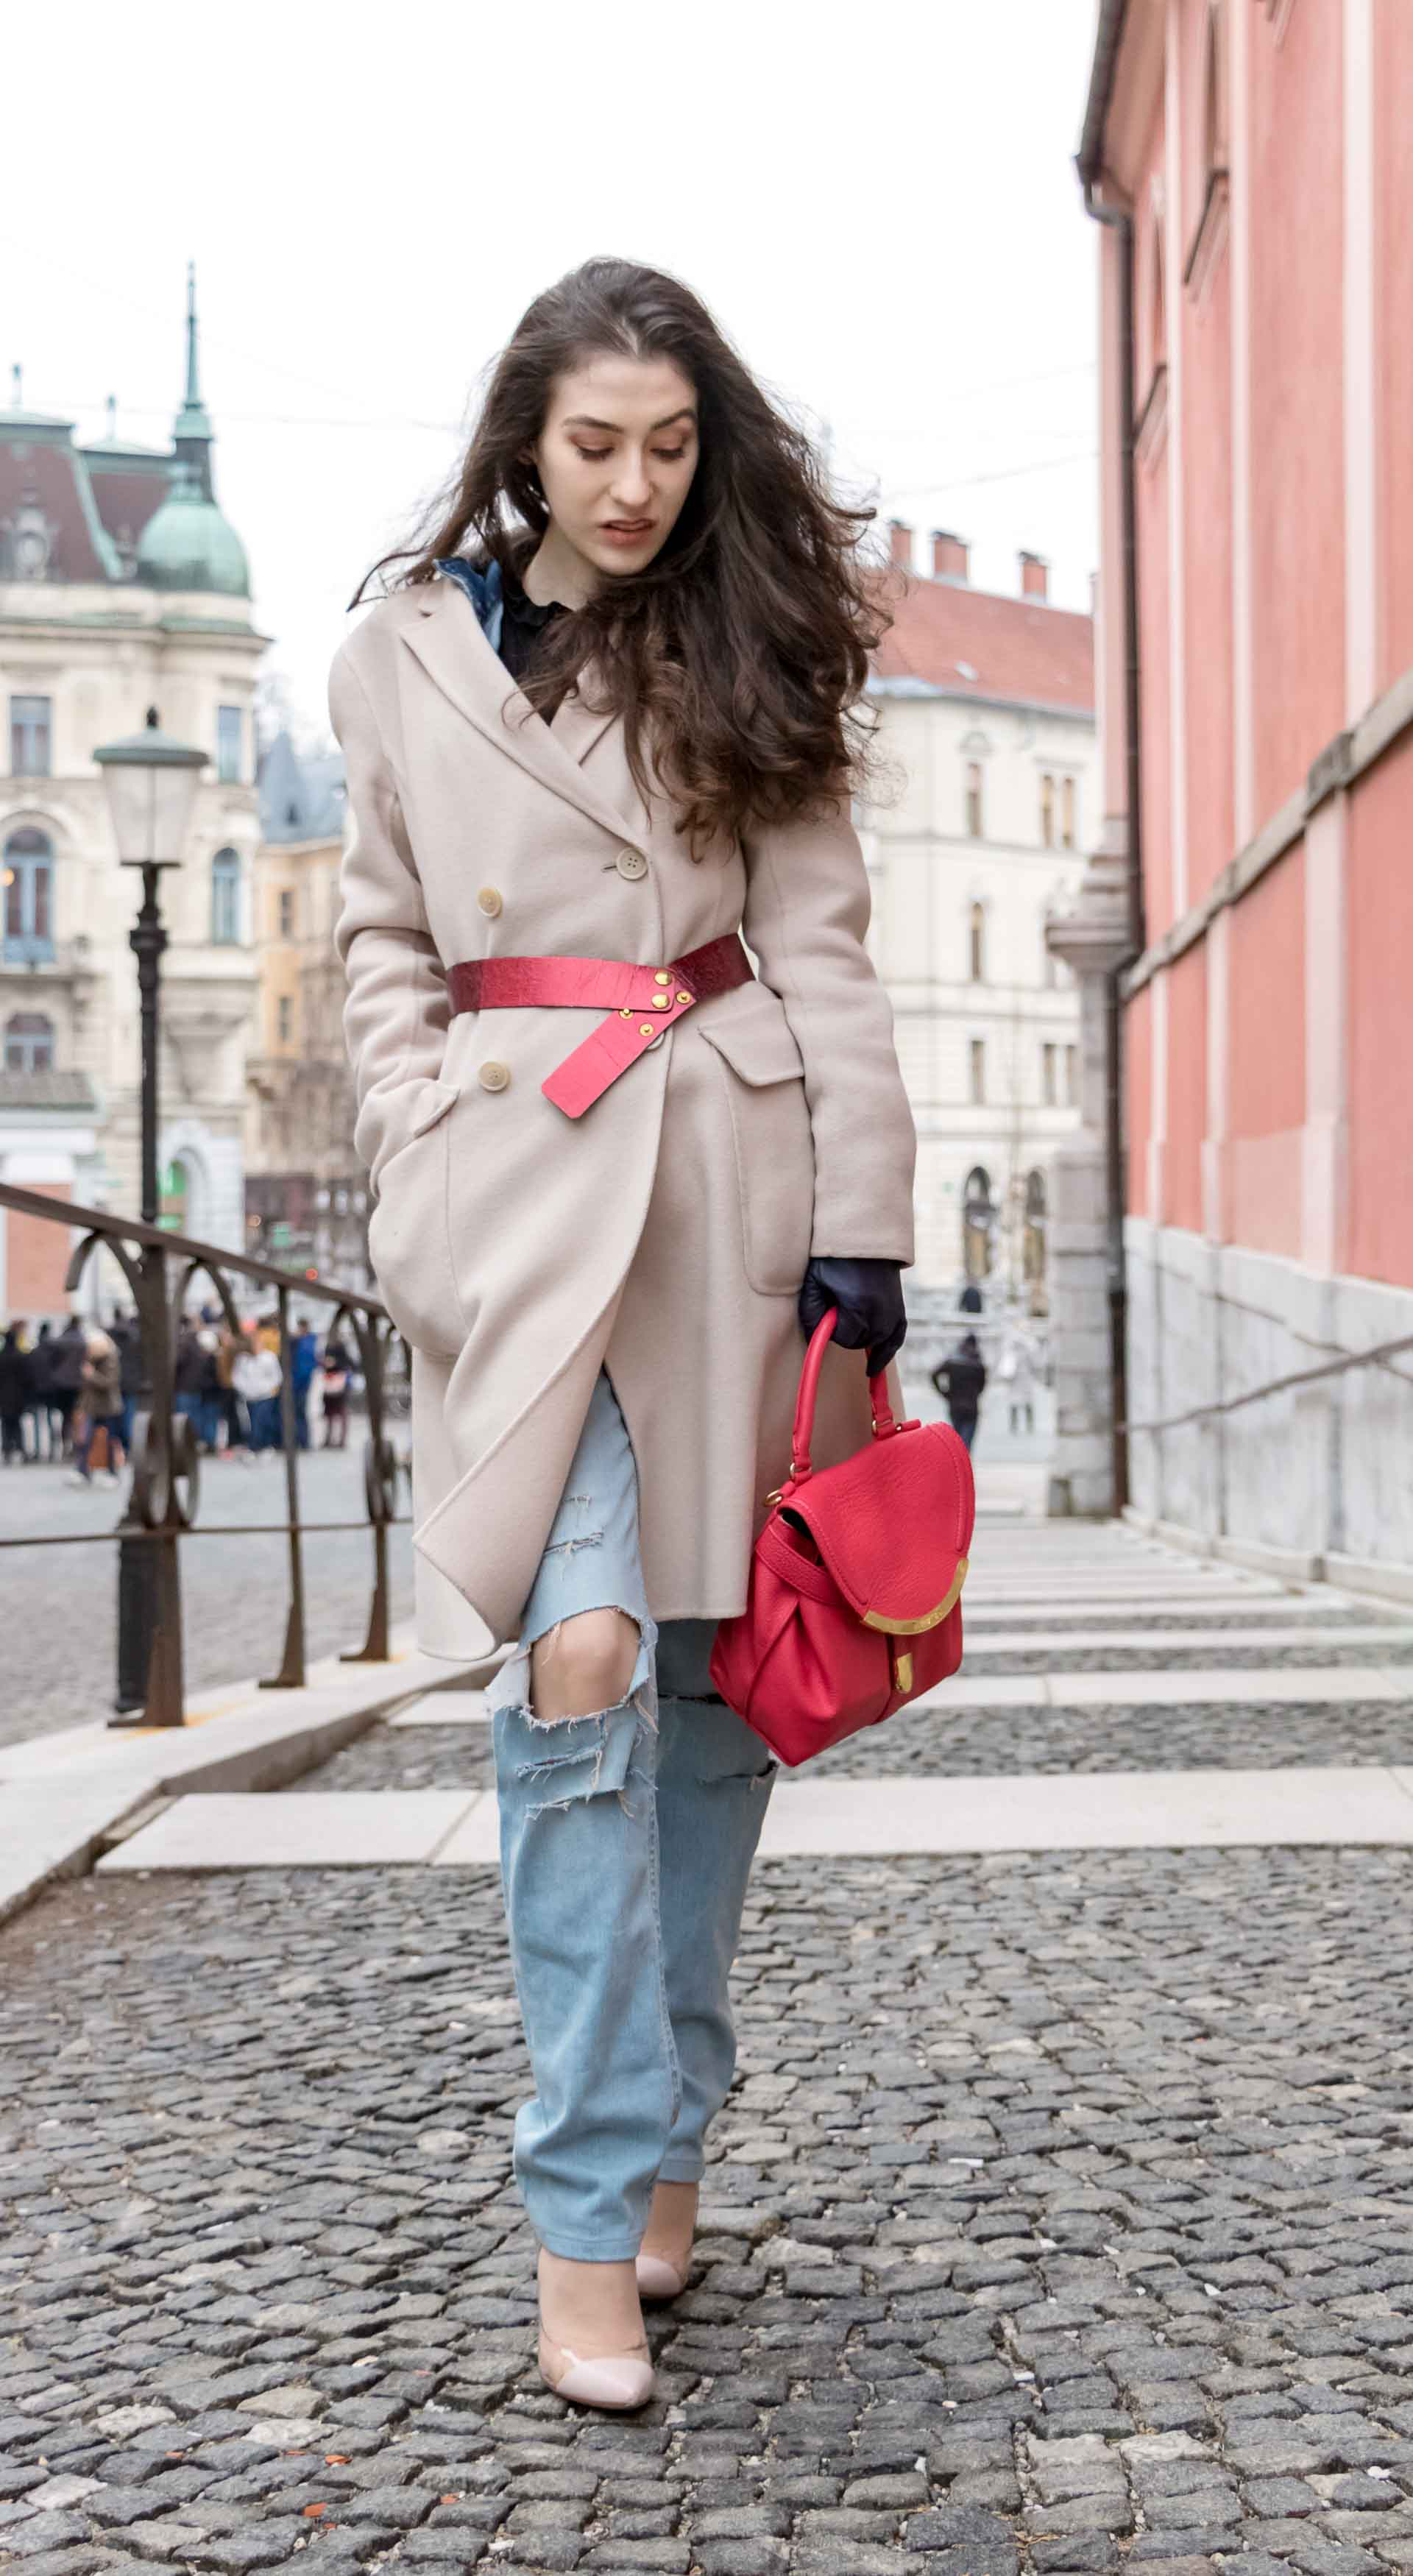 Fashion Blogger Veronika Lipar of Brunette from Wall Street wearing distressed blue Levi's jeans, off-white double breasted Weekend Maxmara coat, red dangling belt, blush Gianvito Rossi plexi pumps, See by Chloe pink top handle bag, blue leather gloves leaning on the wall of the bridge in Ljubljana